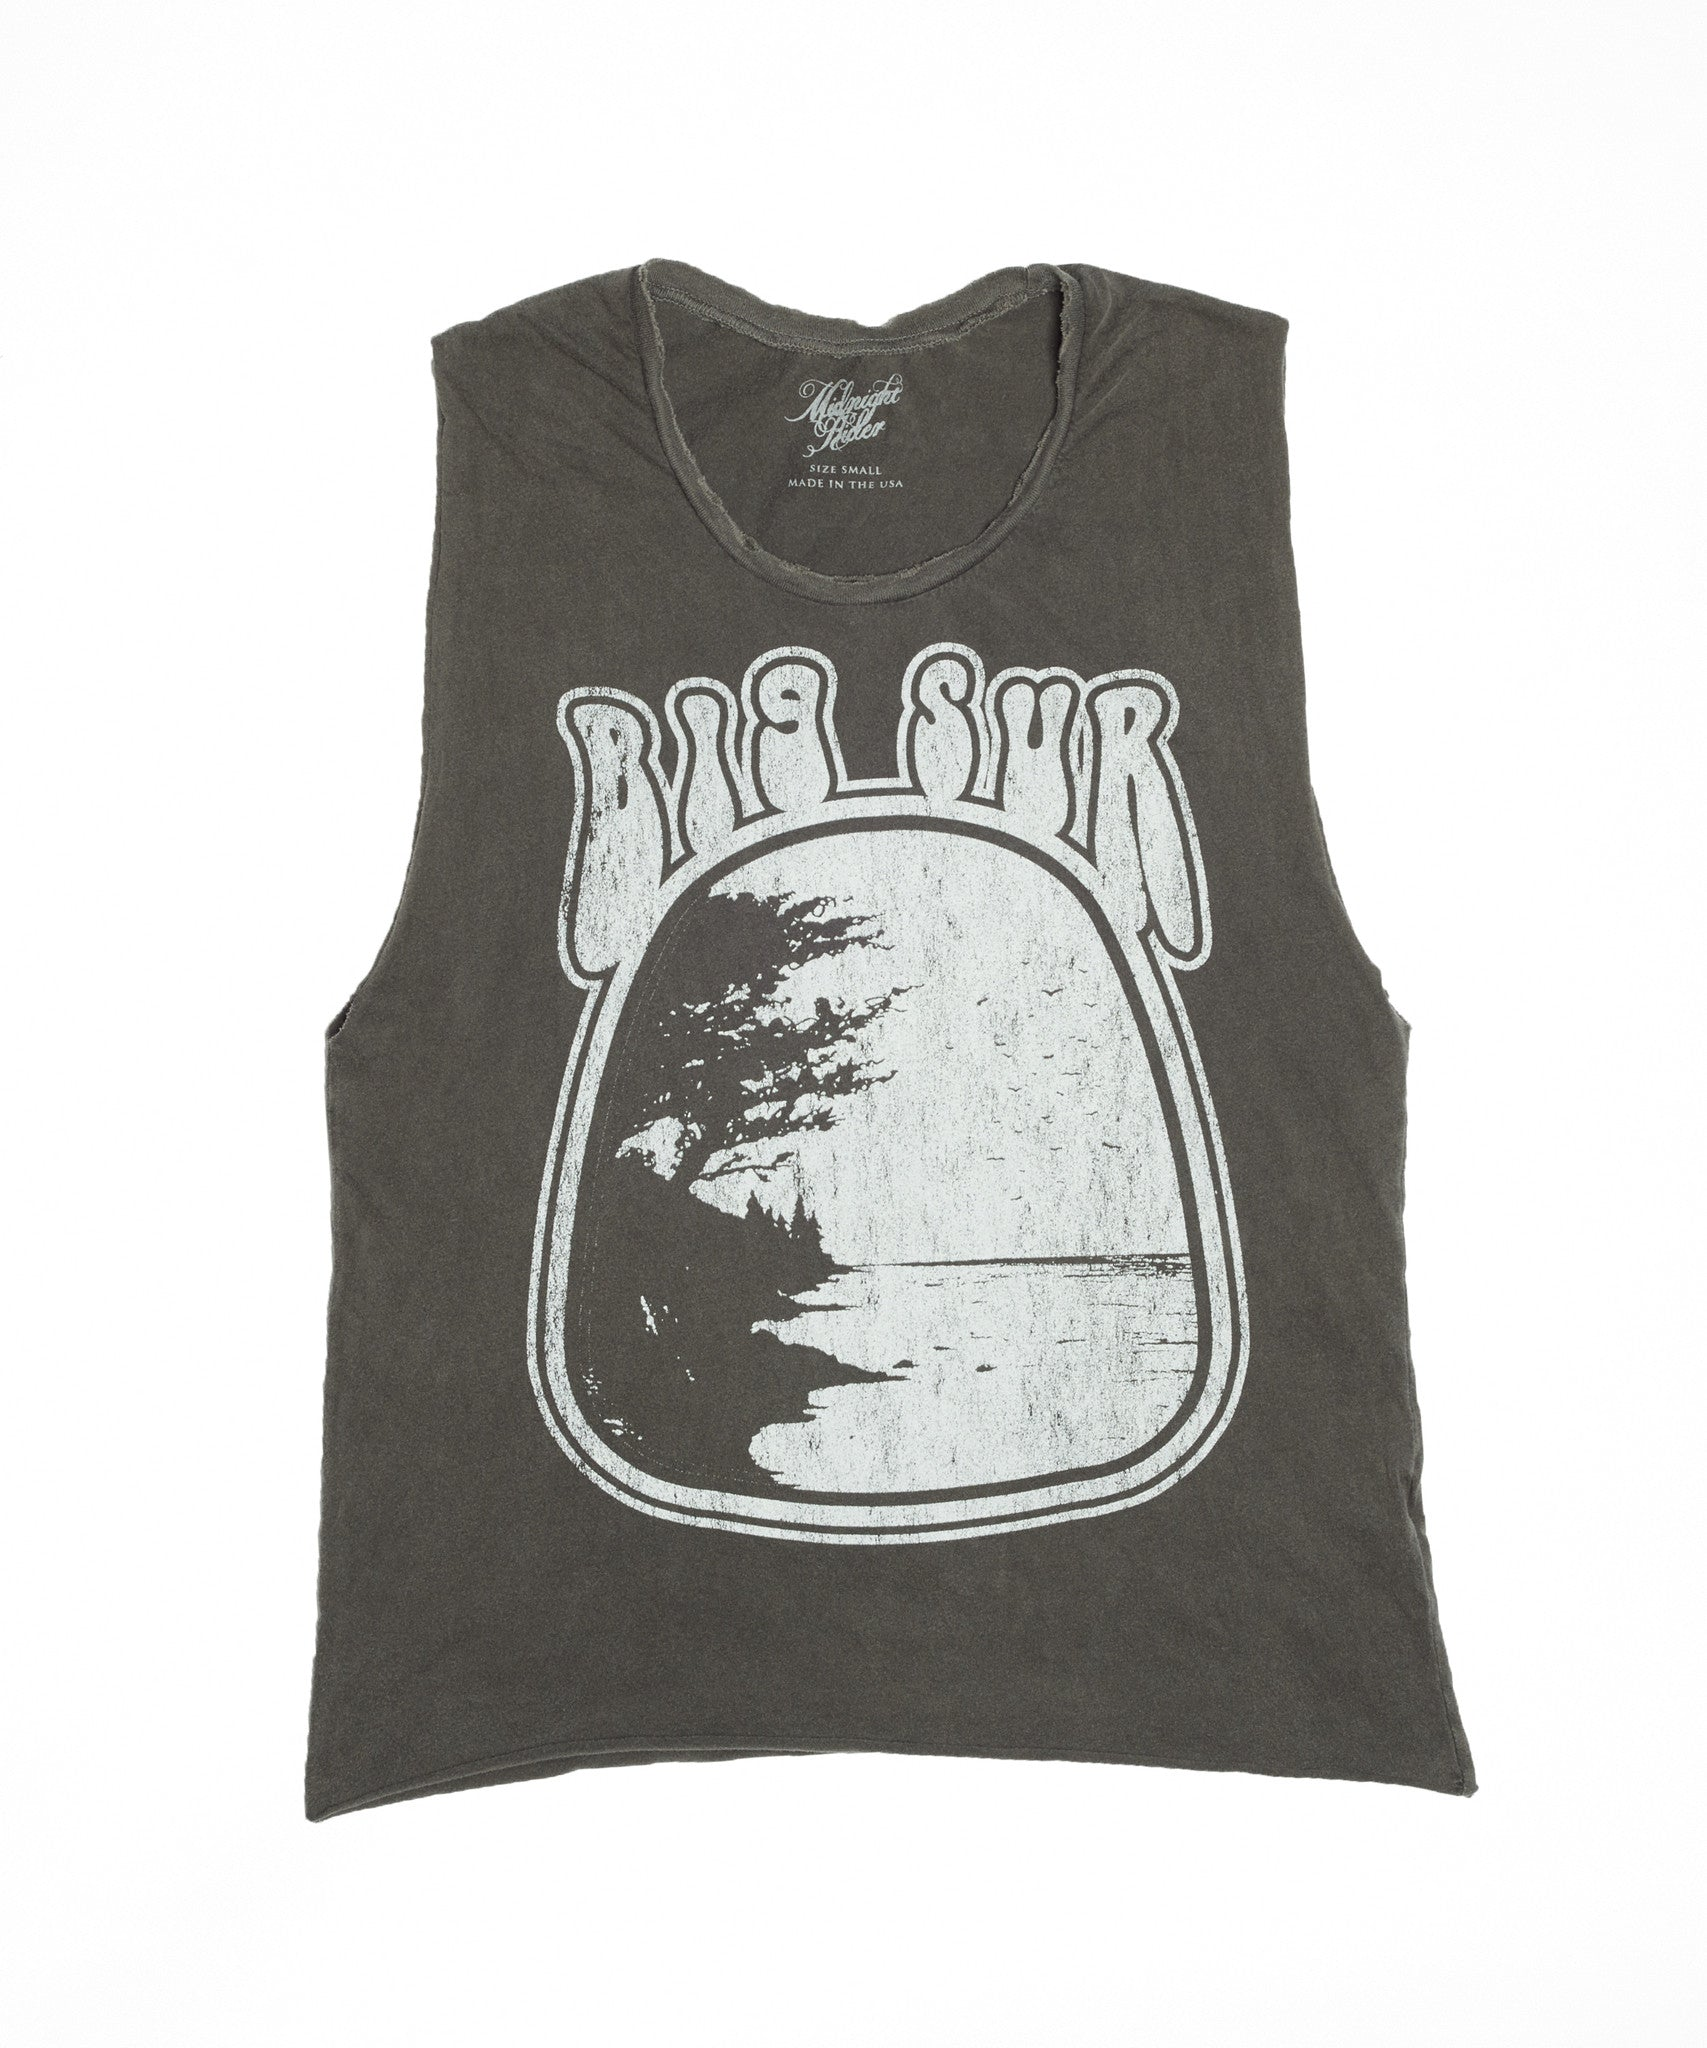 Big Sur Muscle Tee - Vintage Black